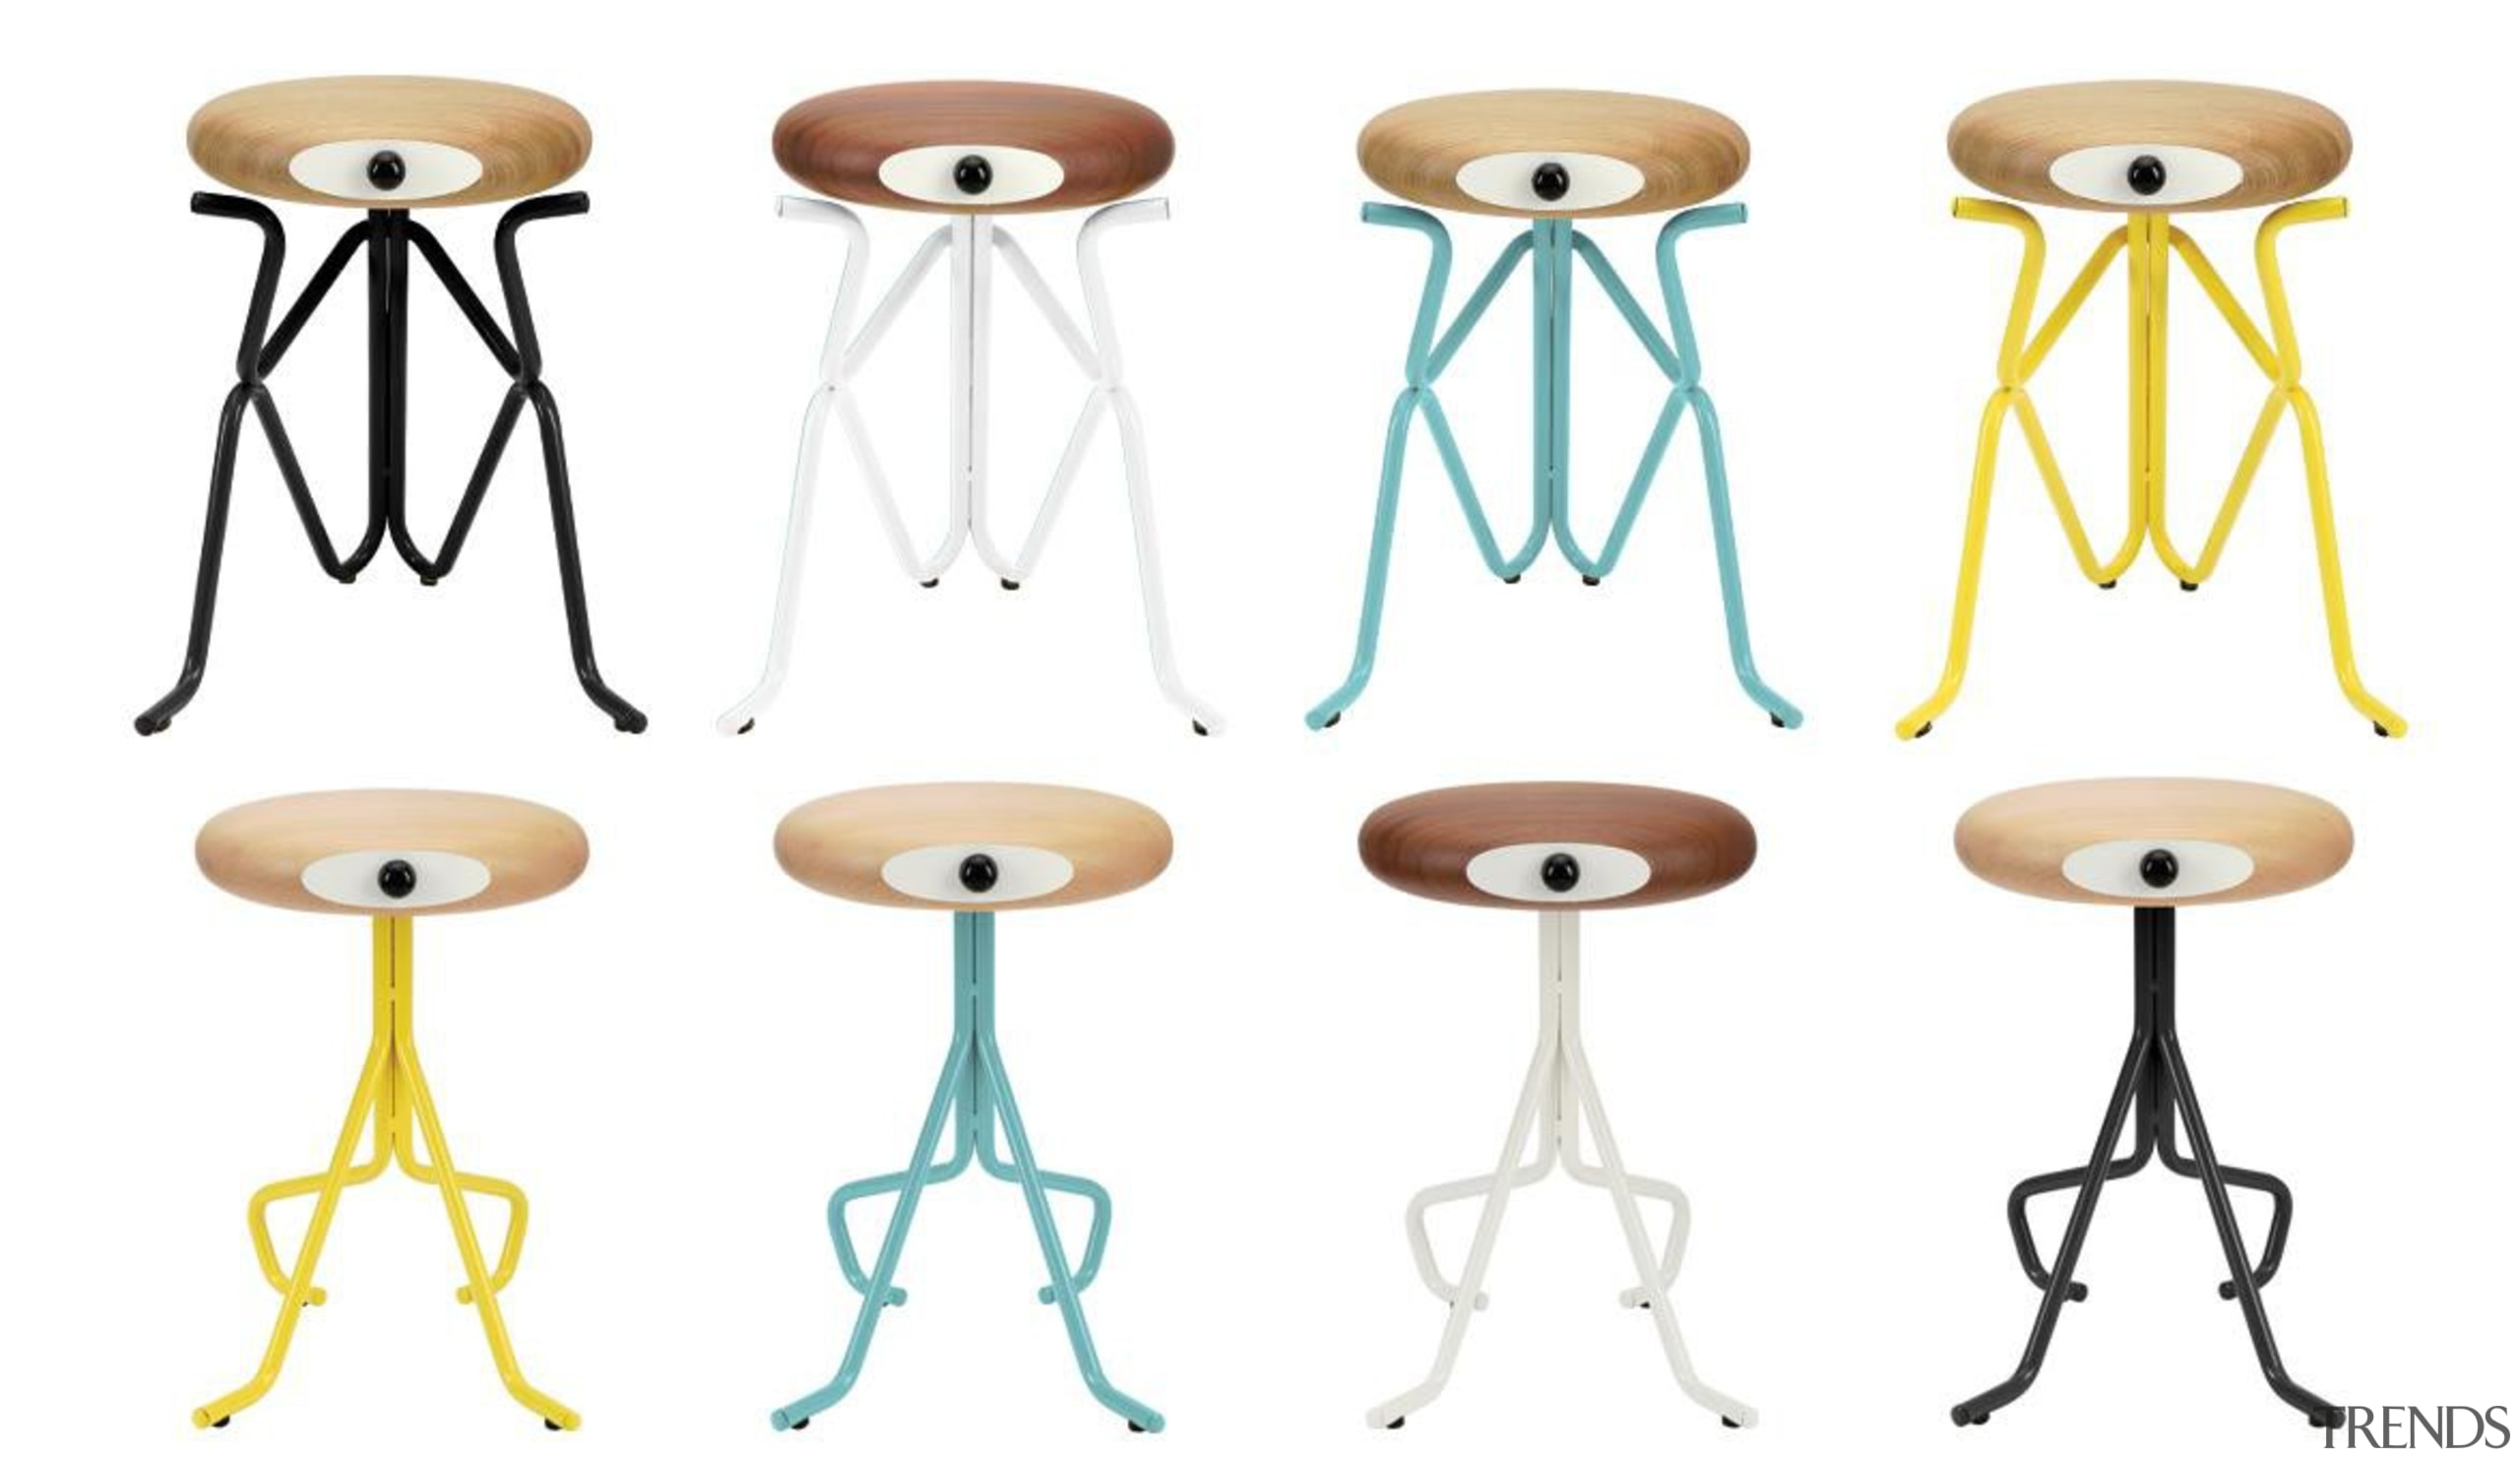 Don't be mistaken, you're not looking at characters font, furniture, line, product, product design, stool, table, white